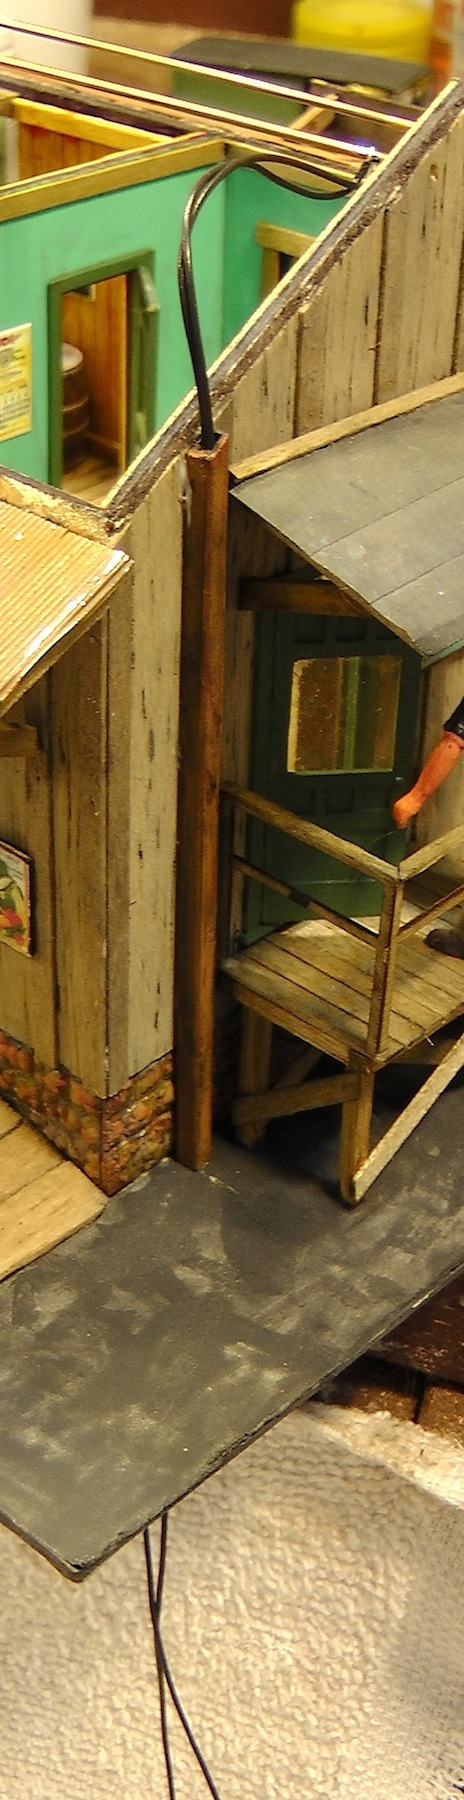 I ran the feed wires to the bus through the base of the freight house model, and up a rusty exterior conduit.